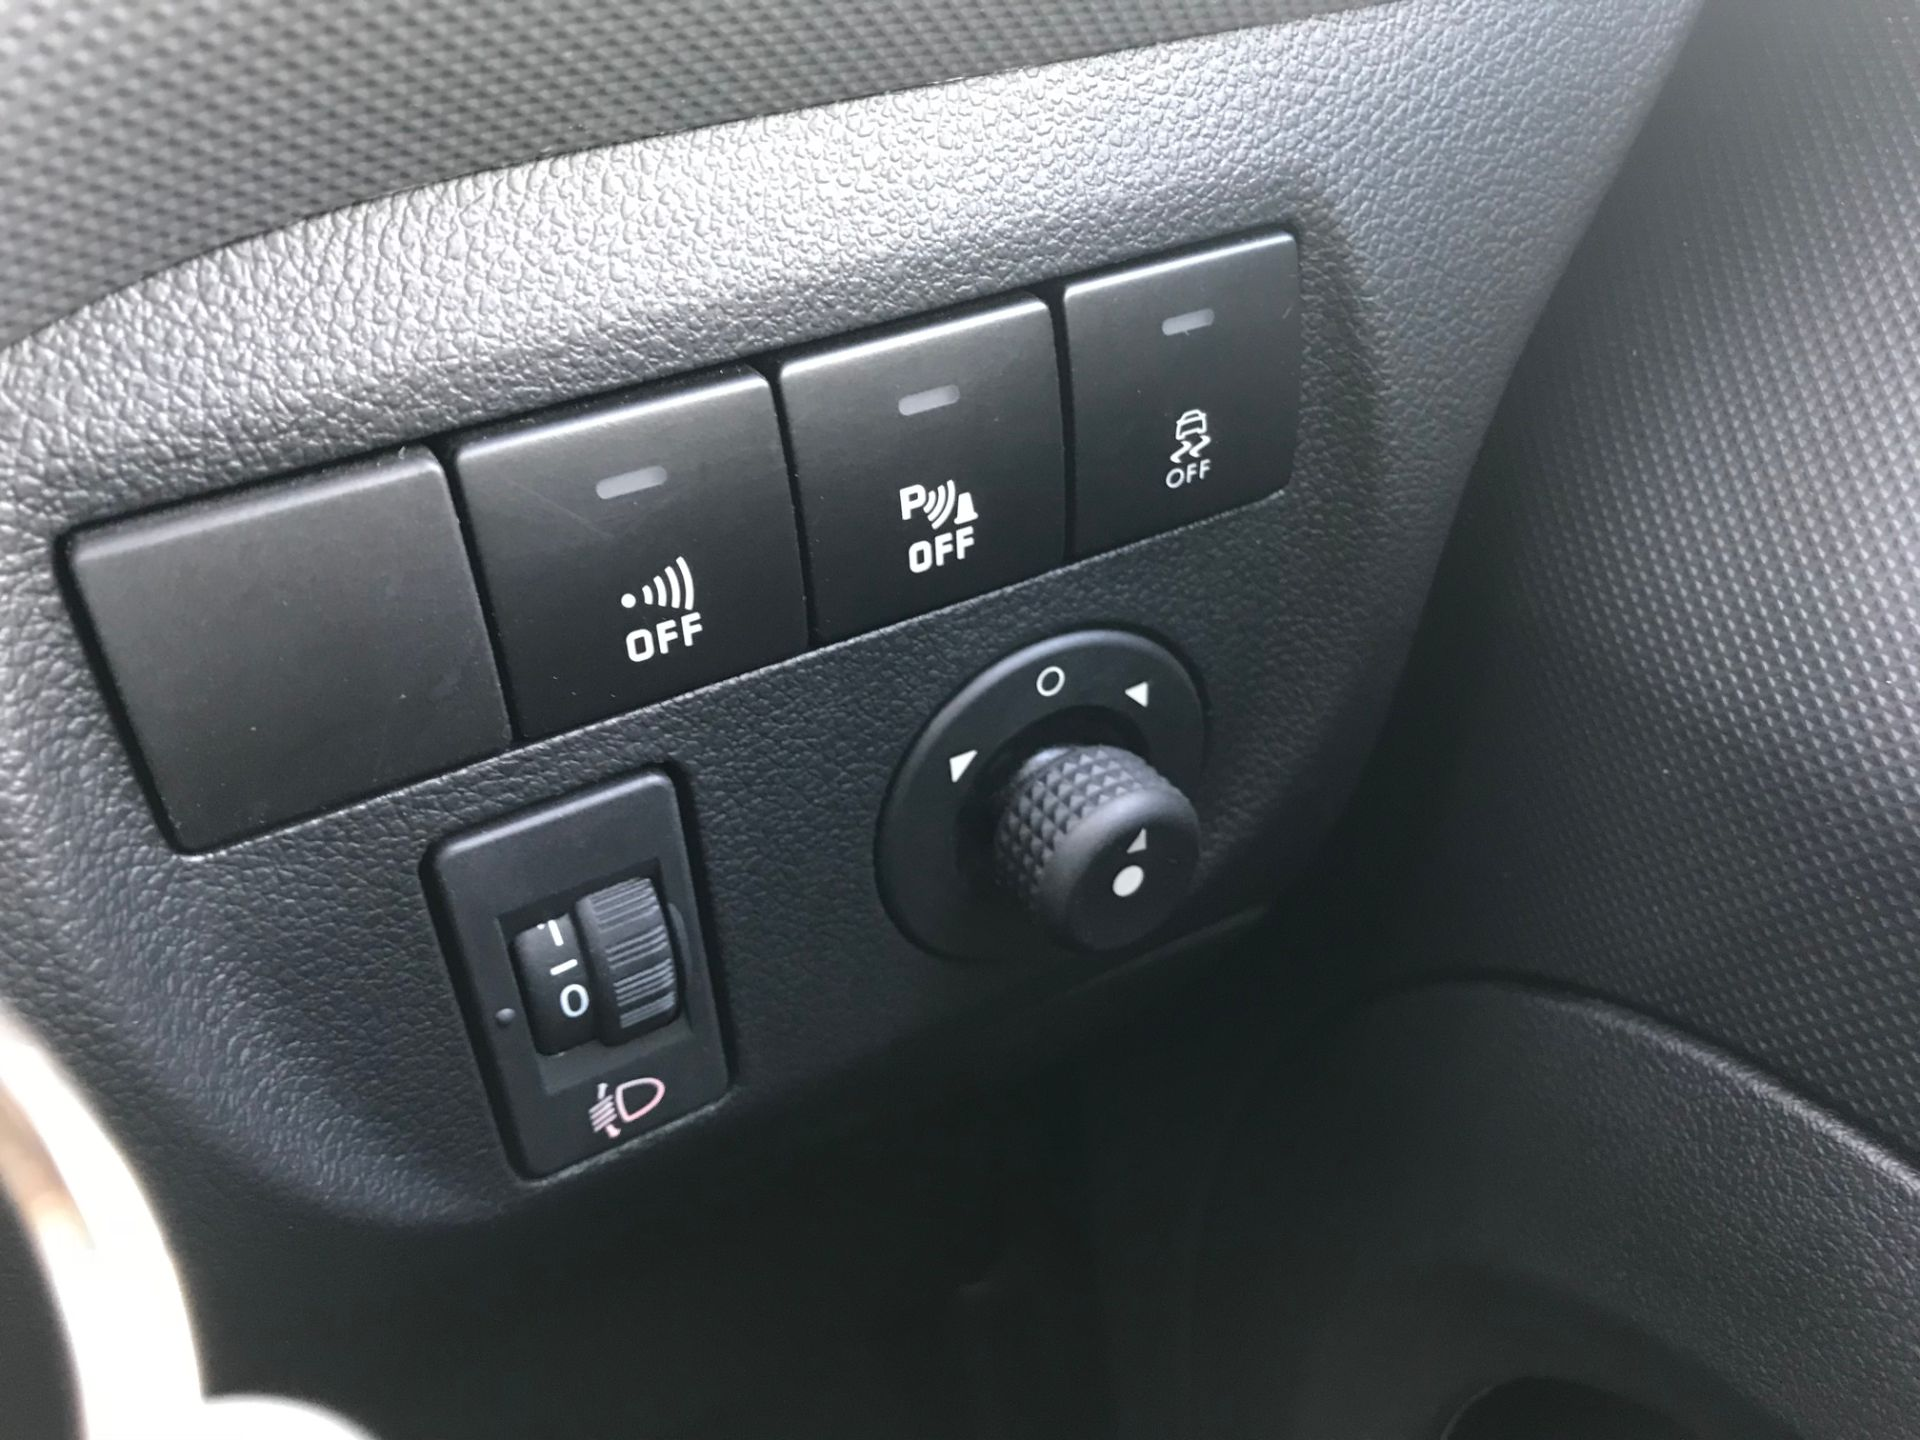 2018 Peugeot Partner 850 1.6 Bluehdi 100 Professional Van [Non Ss]*Restricted to 69MPH* (NV18PXR) Image 33